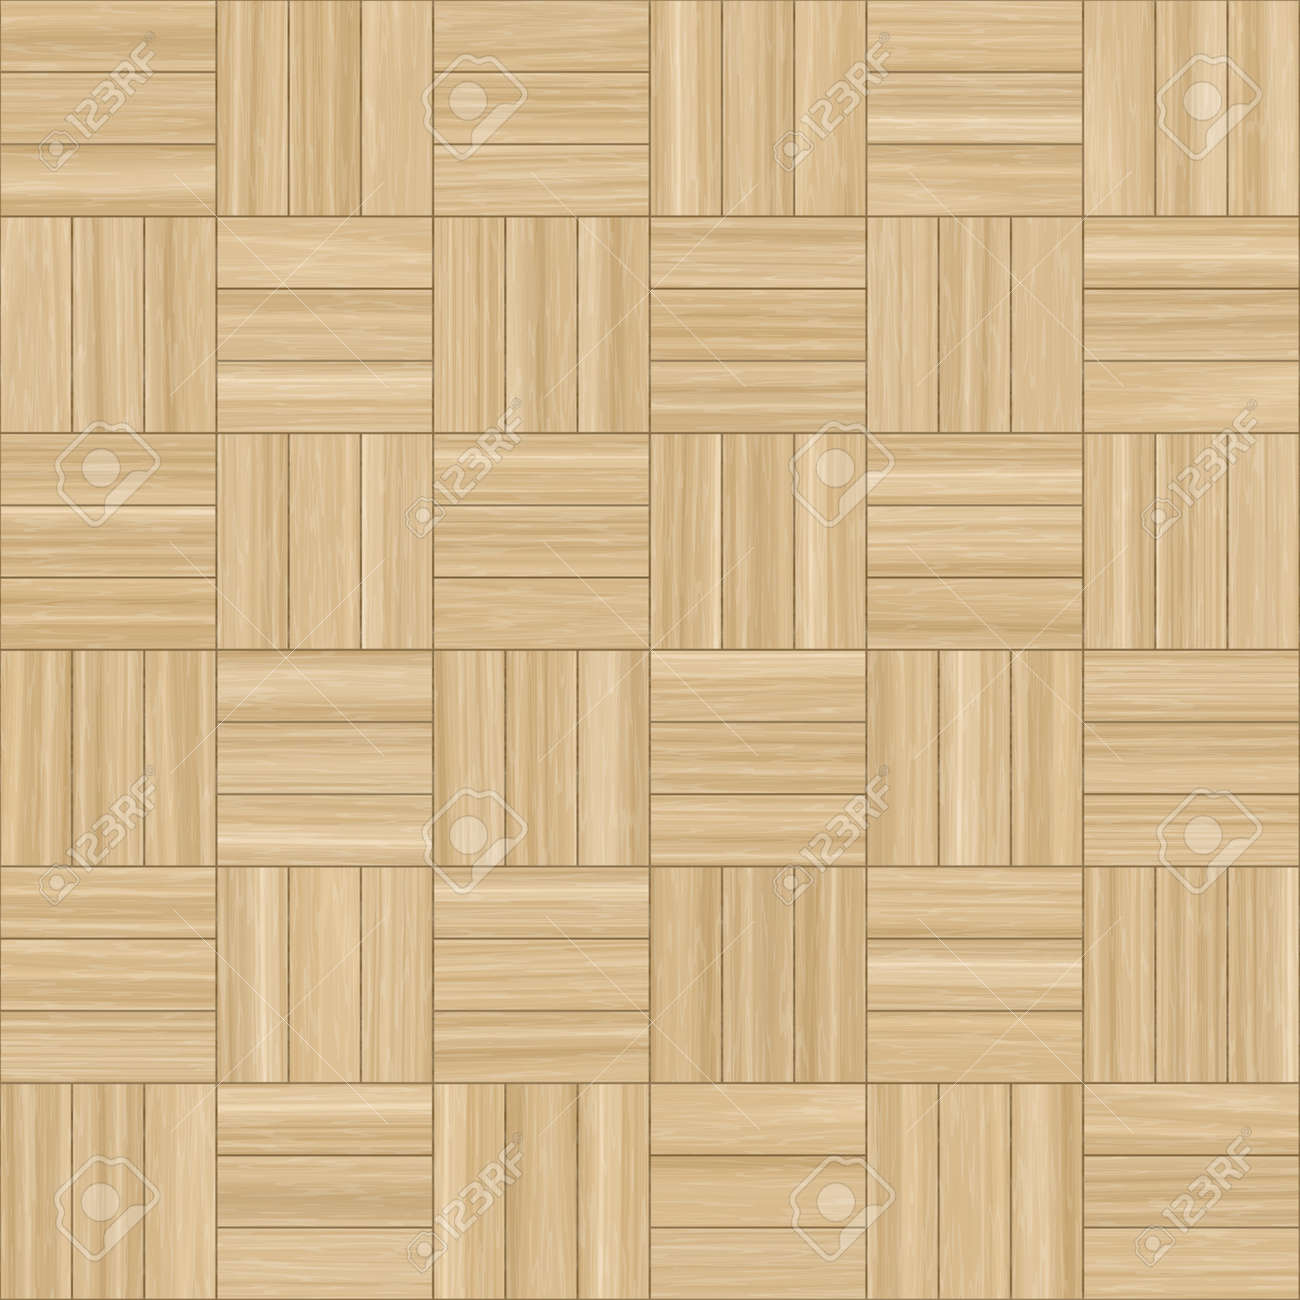 Attrayant Parquet Wood Flooring Seamless Texture Tile Stock Photo   13014863